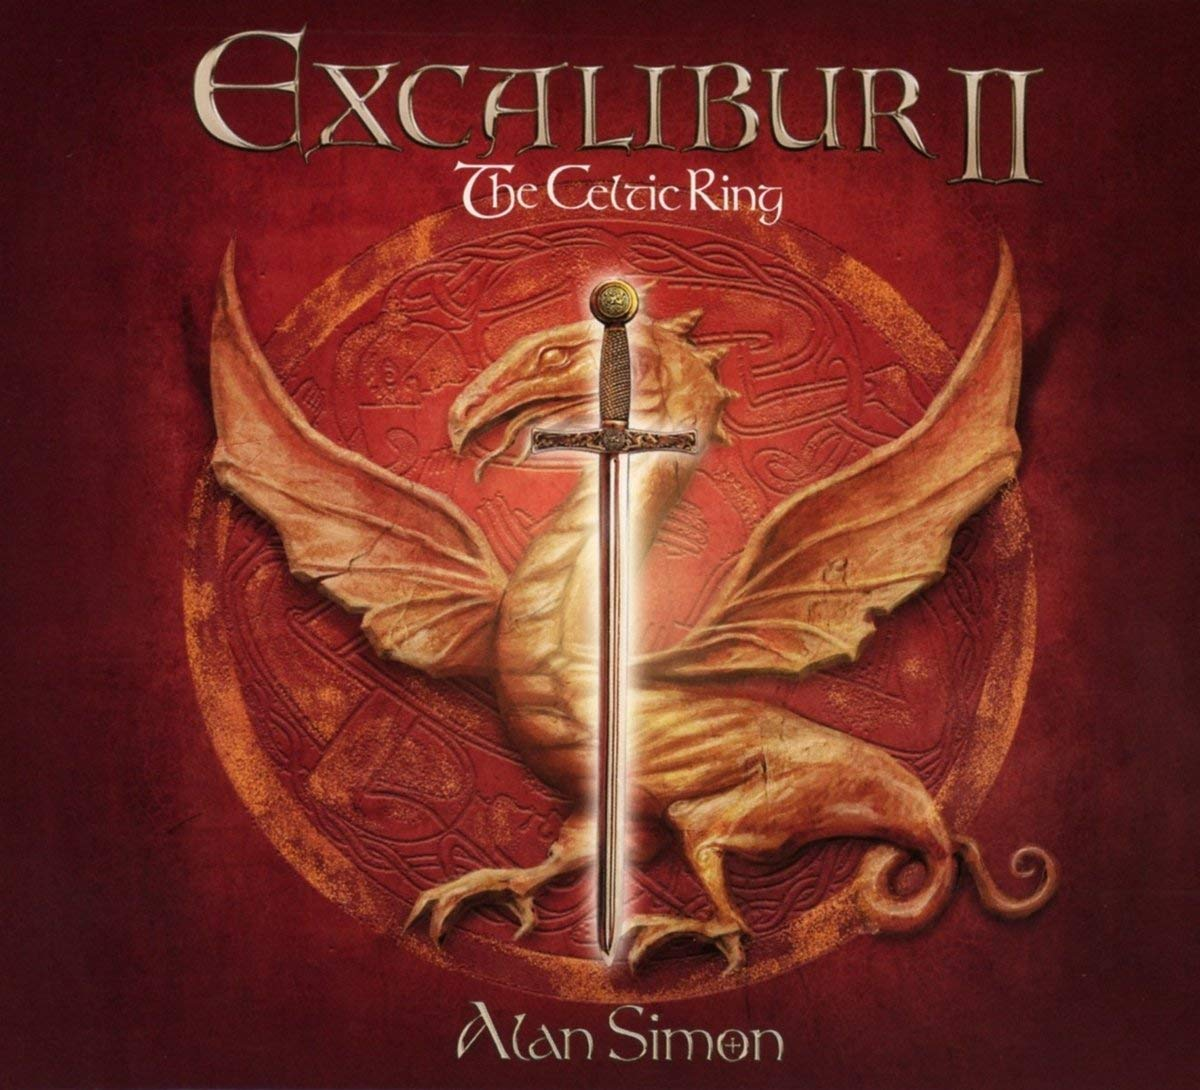 Alan Simon. Excalibur II. The Celtic Ring